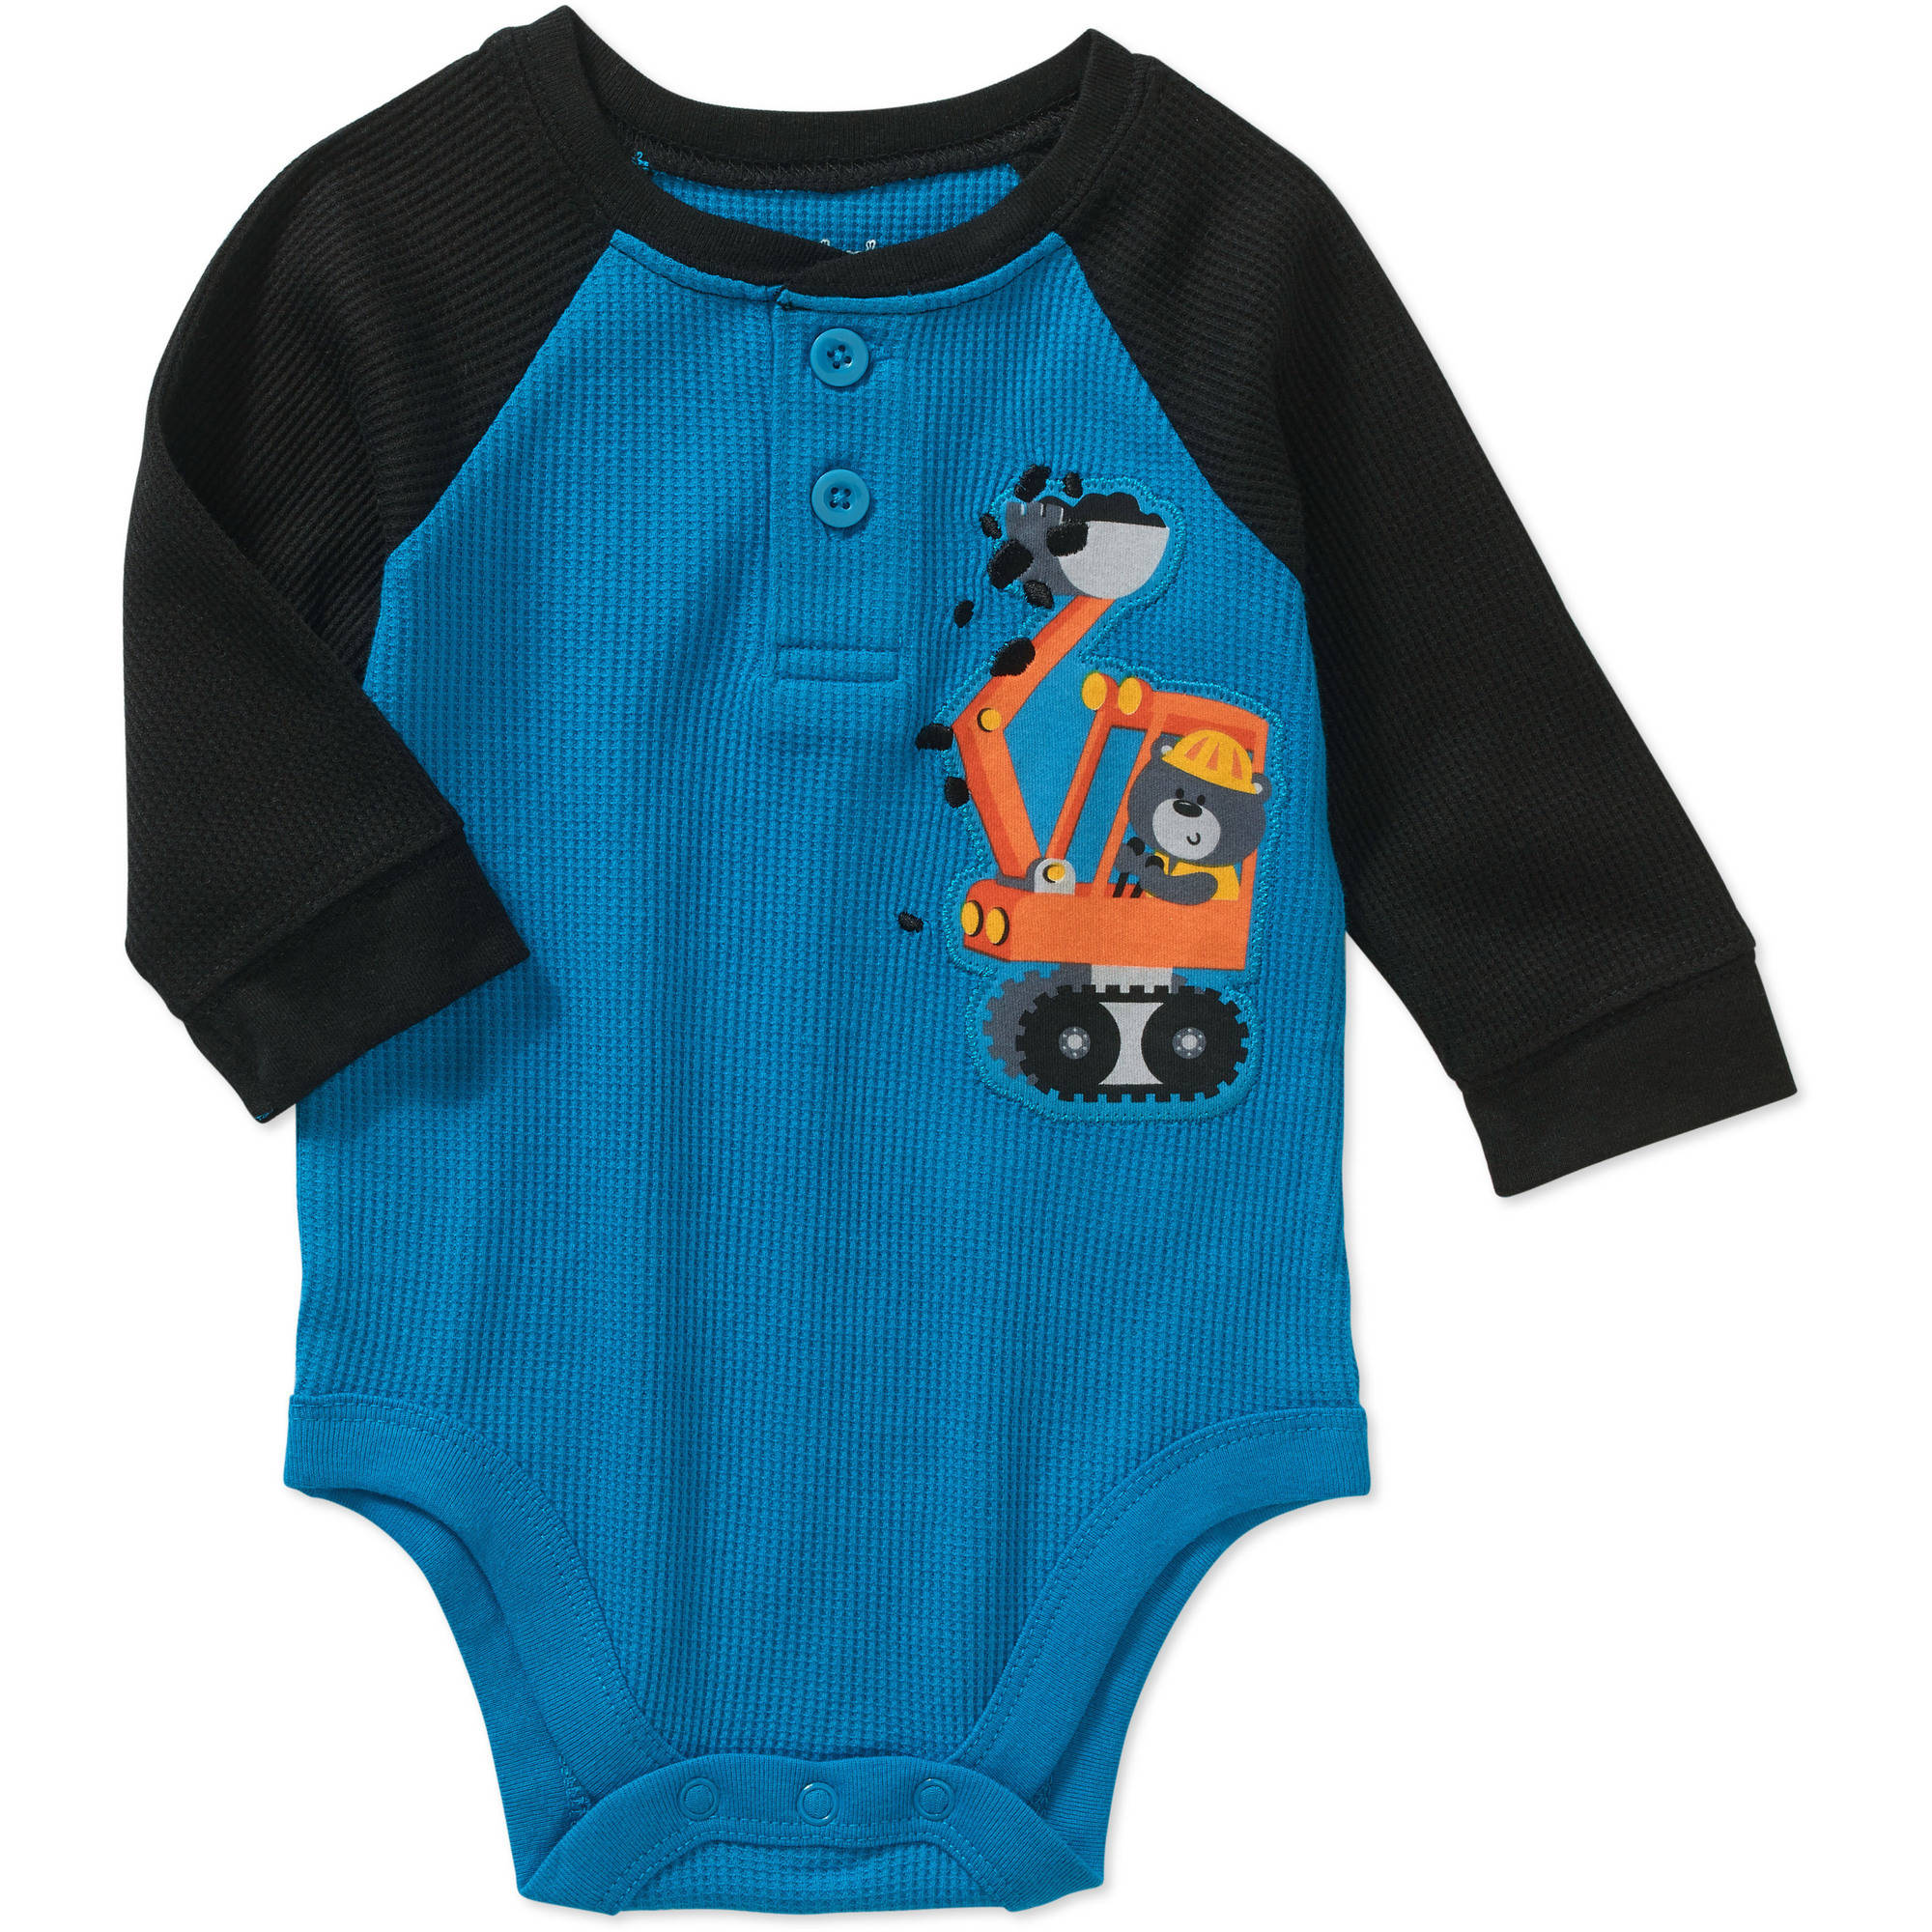 Garanimals Newborn Baby Boy Long Sleeve Thermal Graphic Raglan Bodysuit